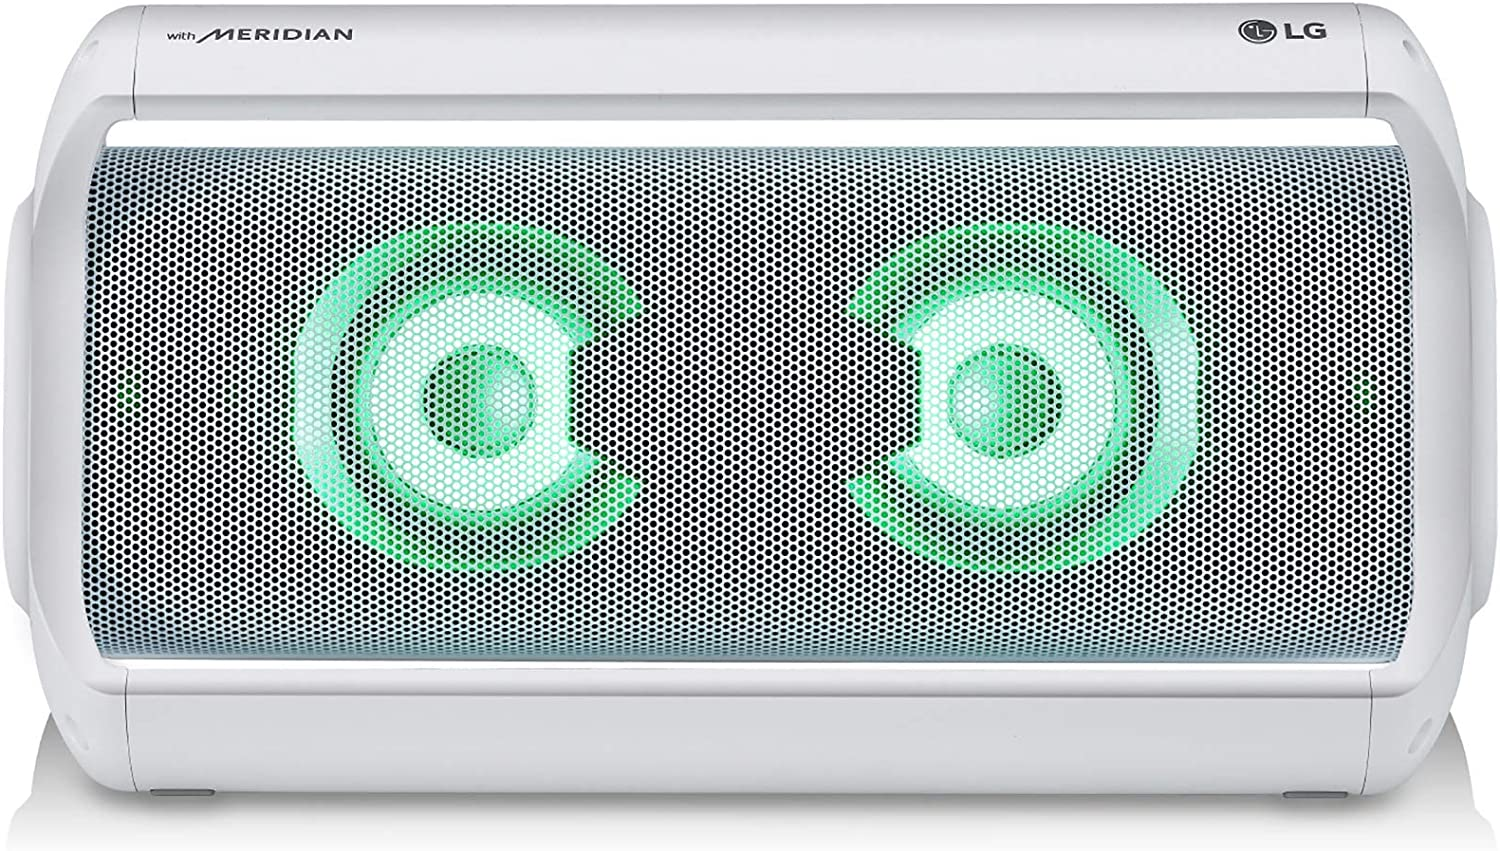 LG PK7W XBOOM Go Water-Resistant Wireless Bluetooth Party Speaker with Up To 22 Hours Playback - White (Renewed)